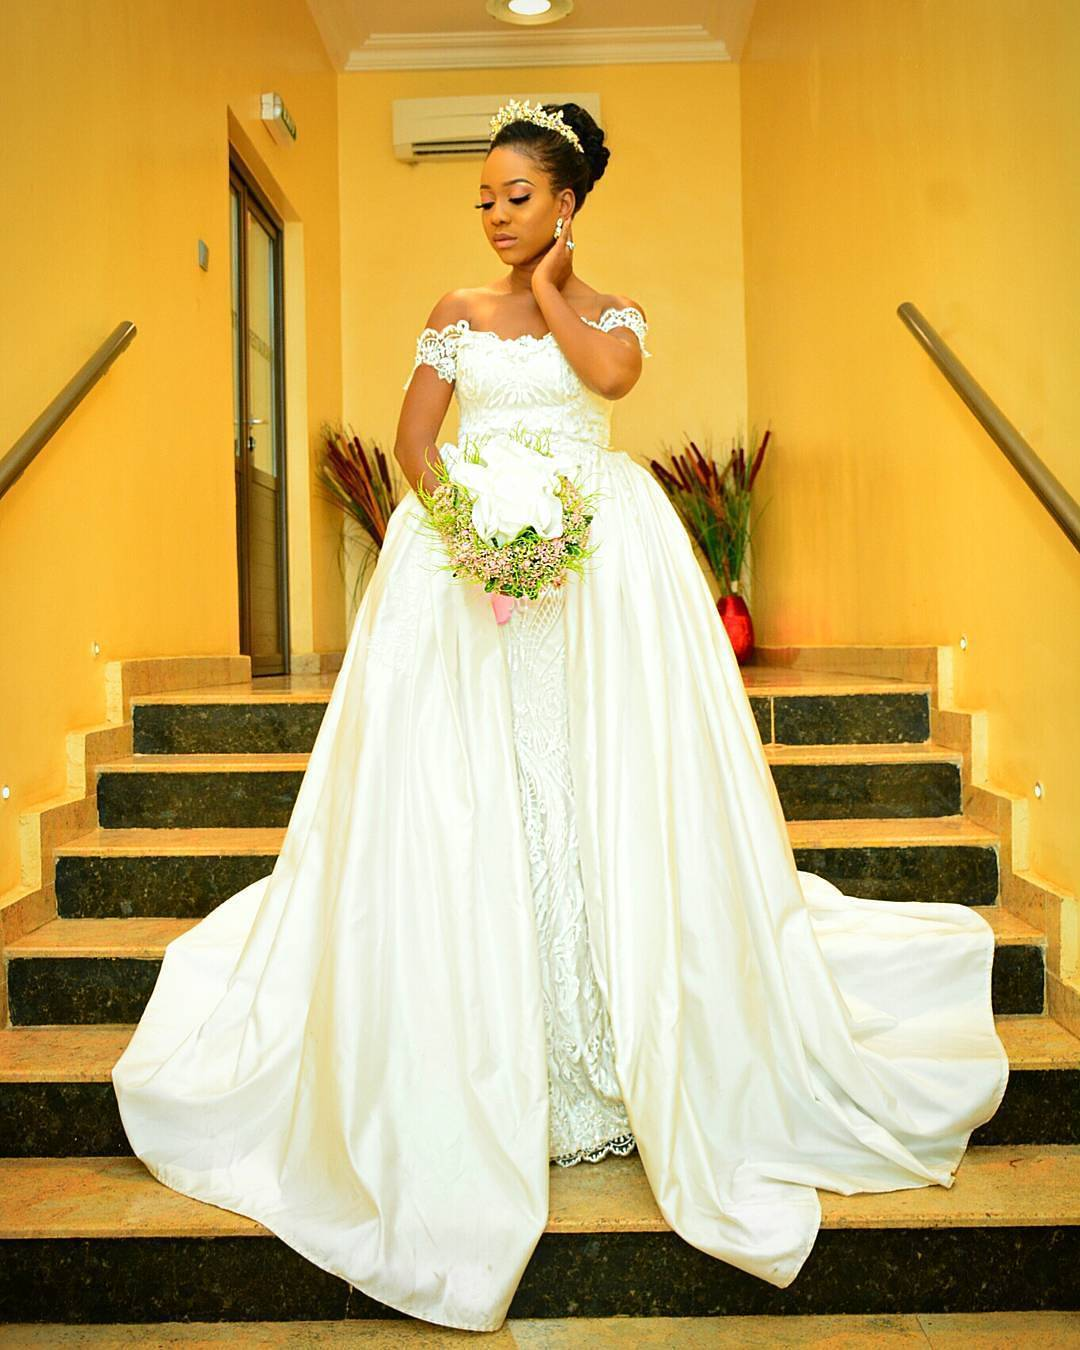 overskirt4 - Bridal Overskirts Are The Latest Bridal Trend Now